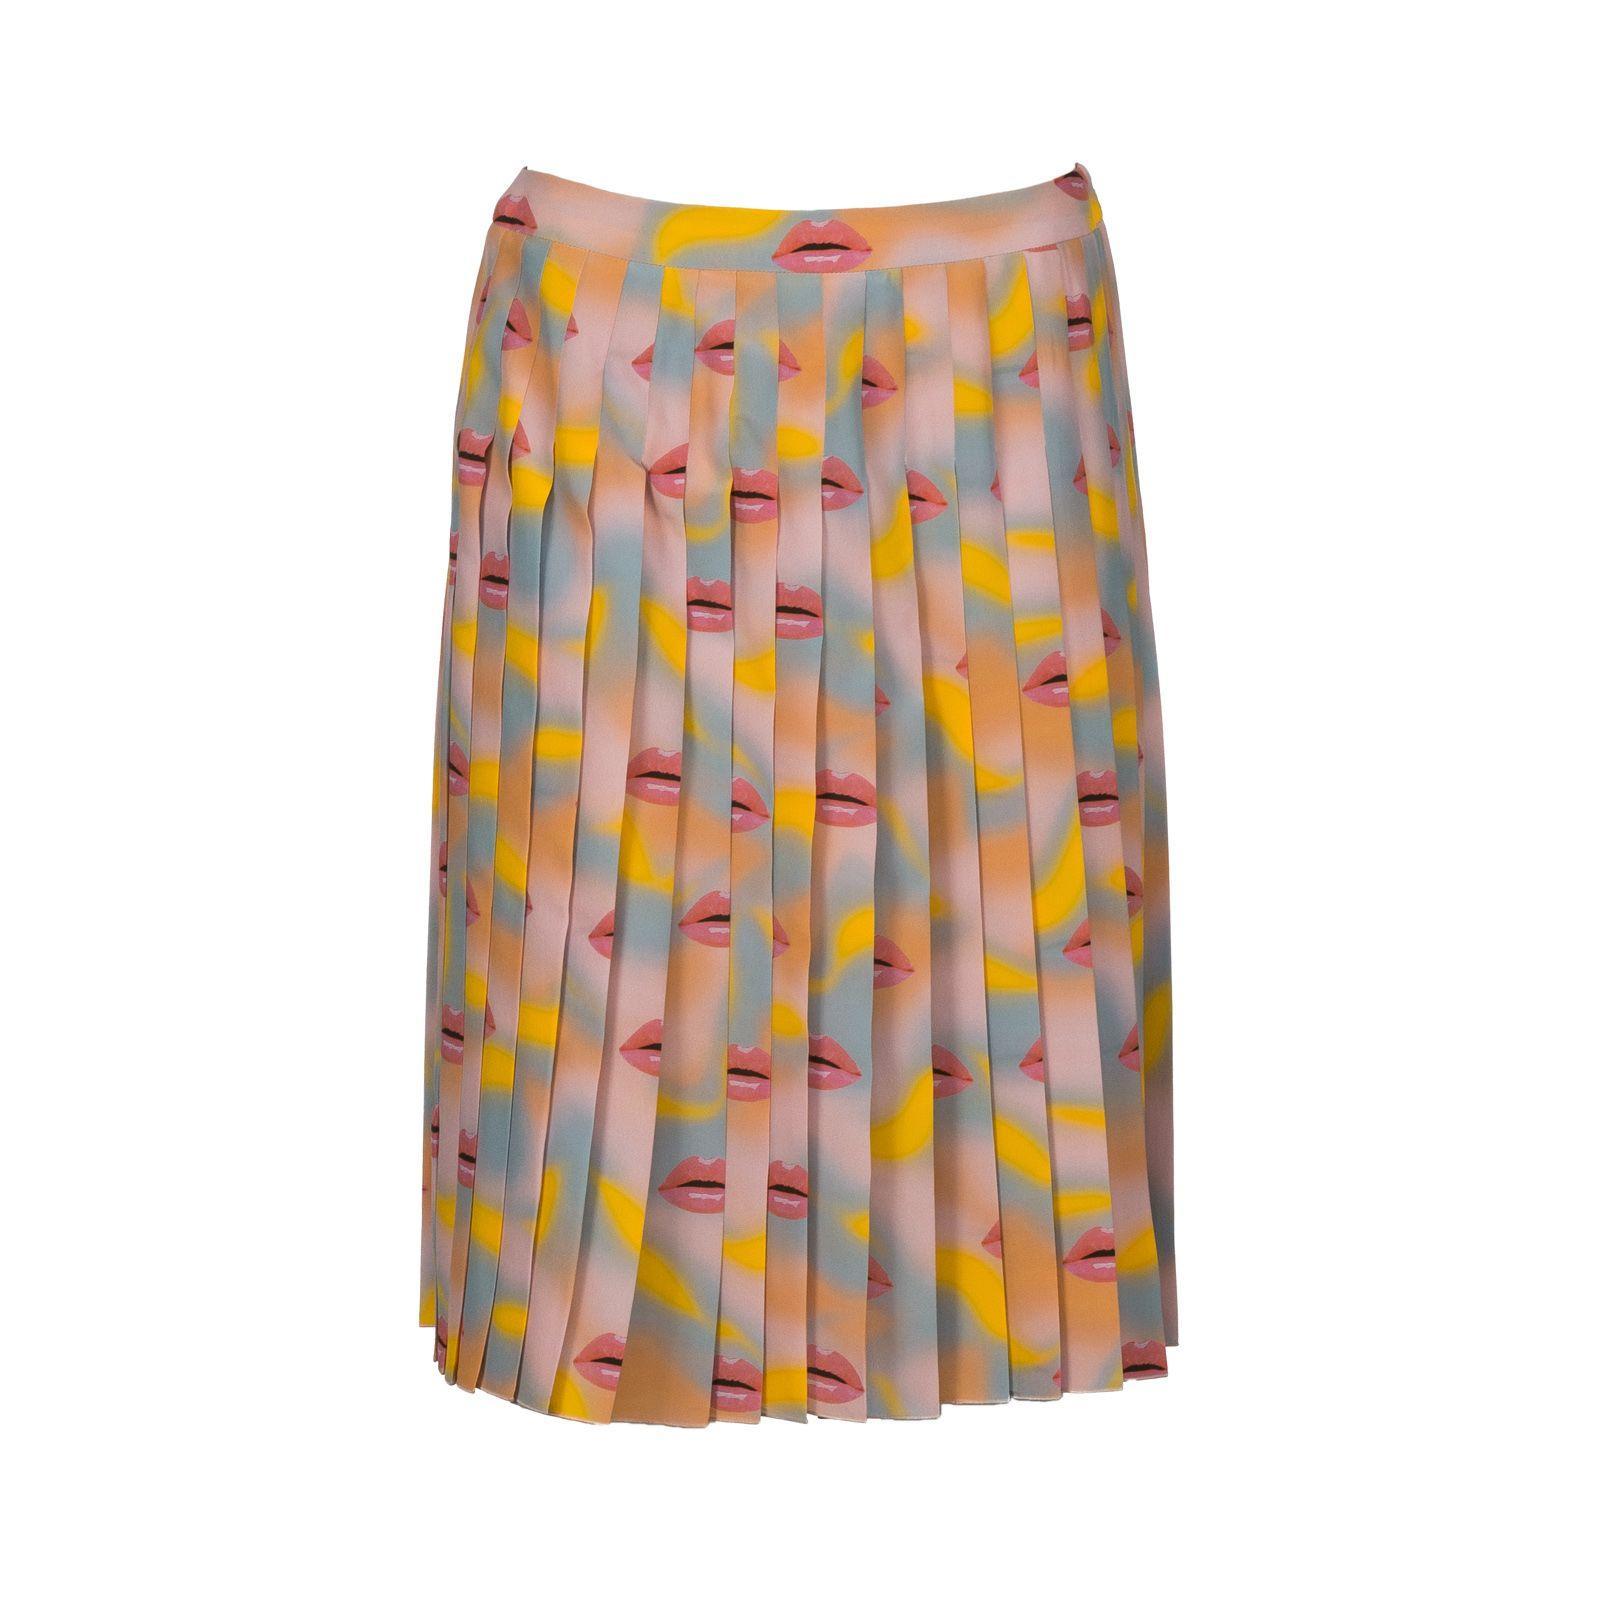 5d2c4af42c Prada Silk Lip Print Pleated Skirt In Alabaster + Apricot | ModeSens